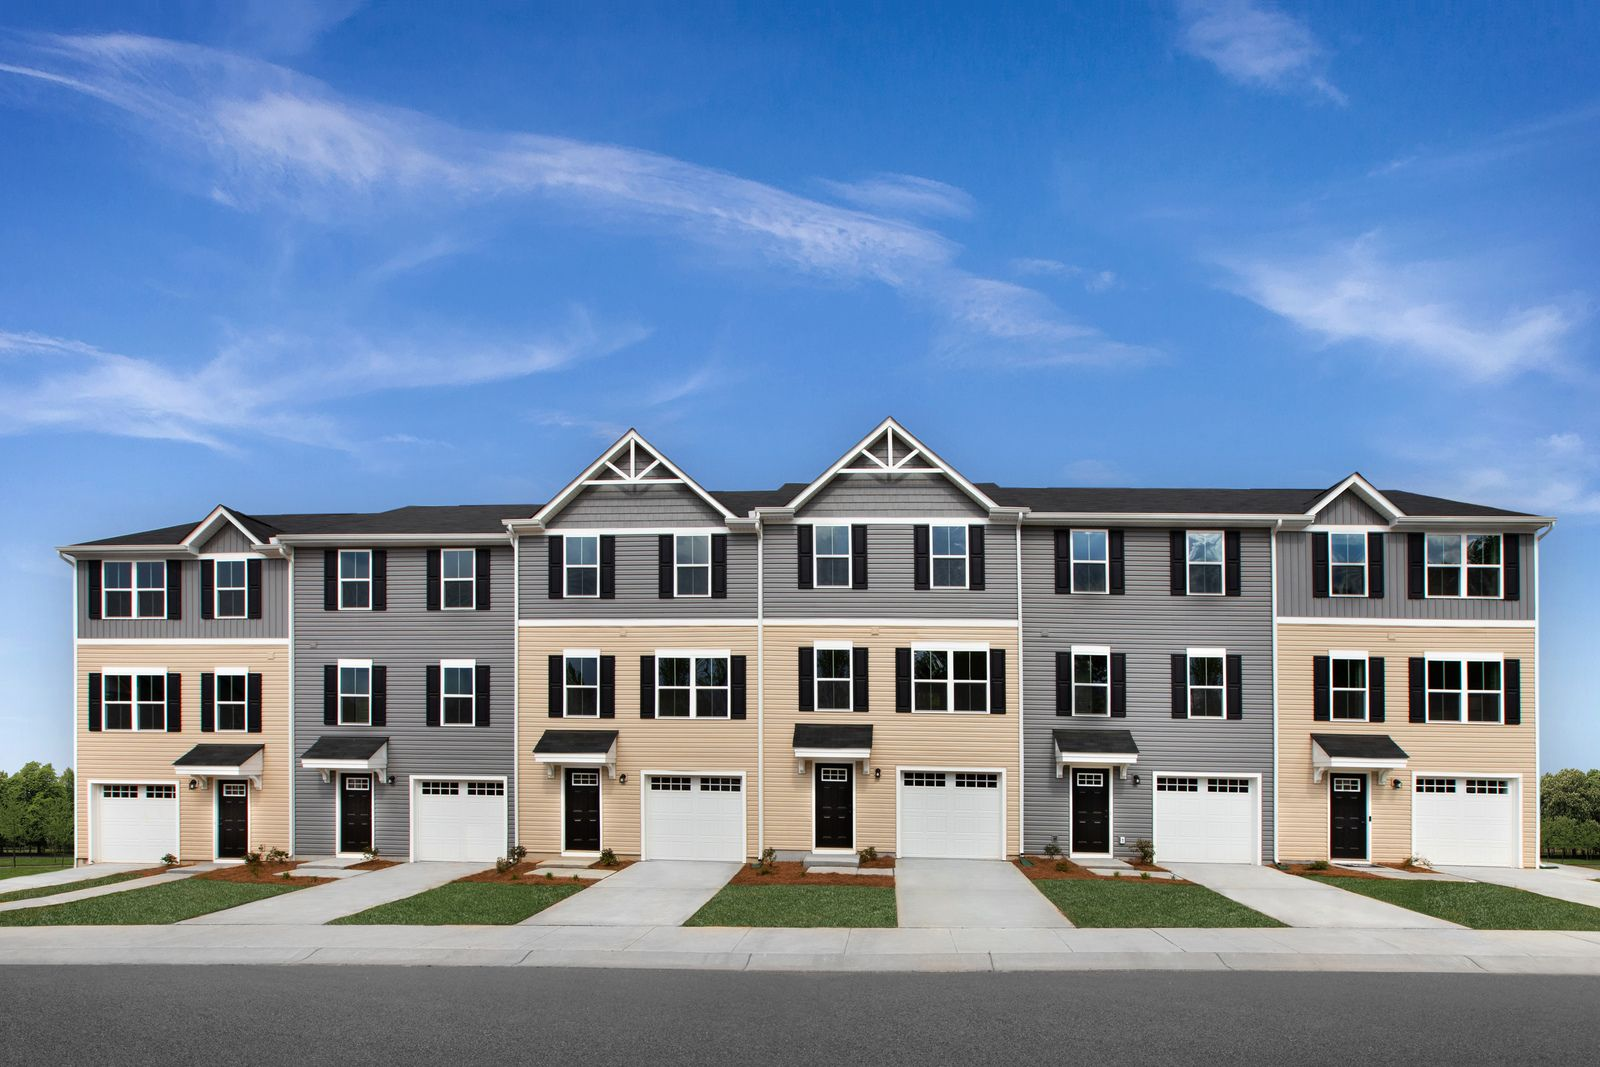 Why Rent? Affordable Townhomes Minutes from Uptown:New 2- & 3-story townhomes close to shopping and minutes to Uptown.Schedule a visit today!